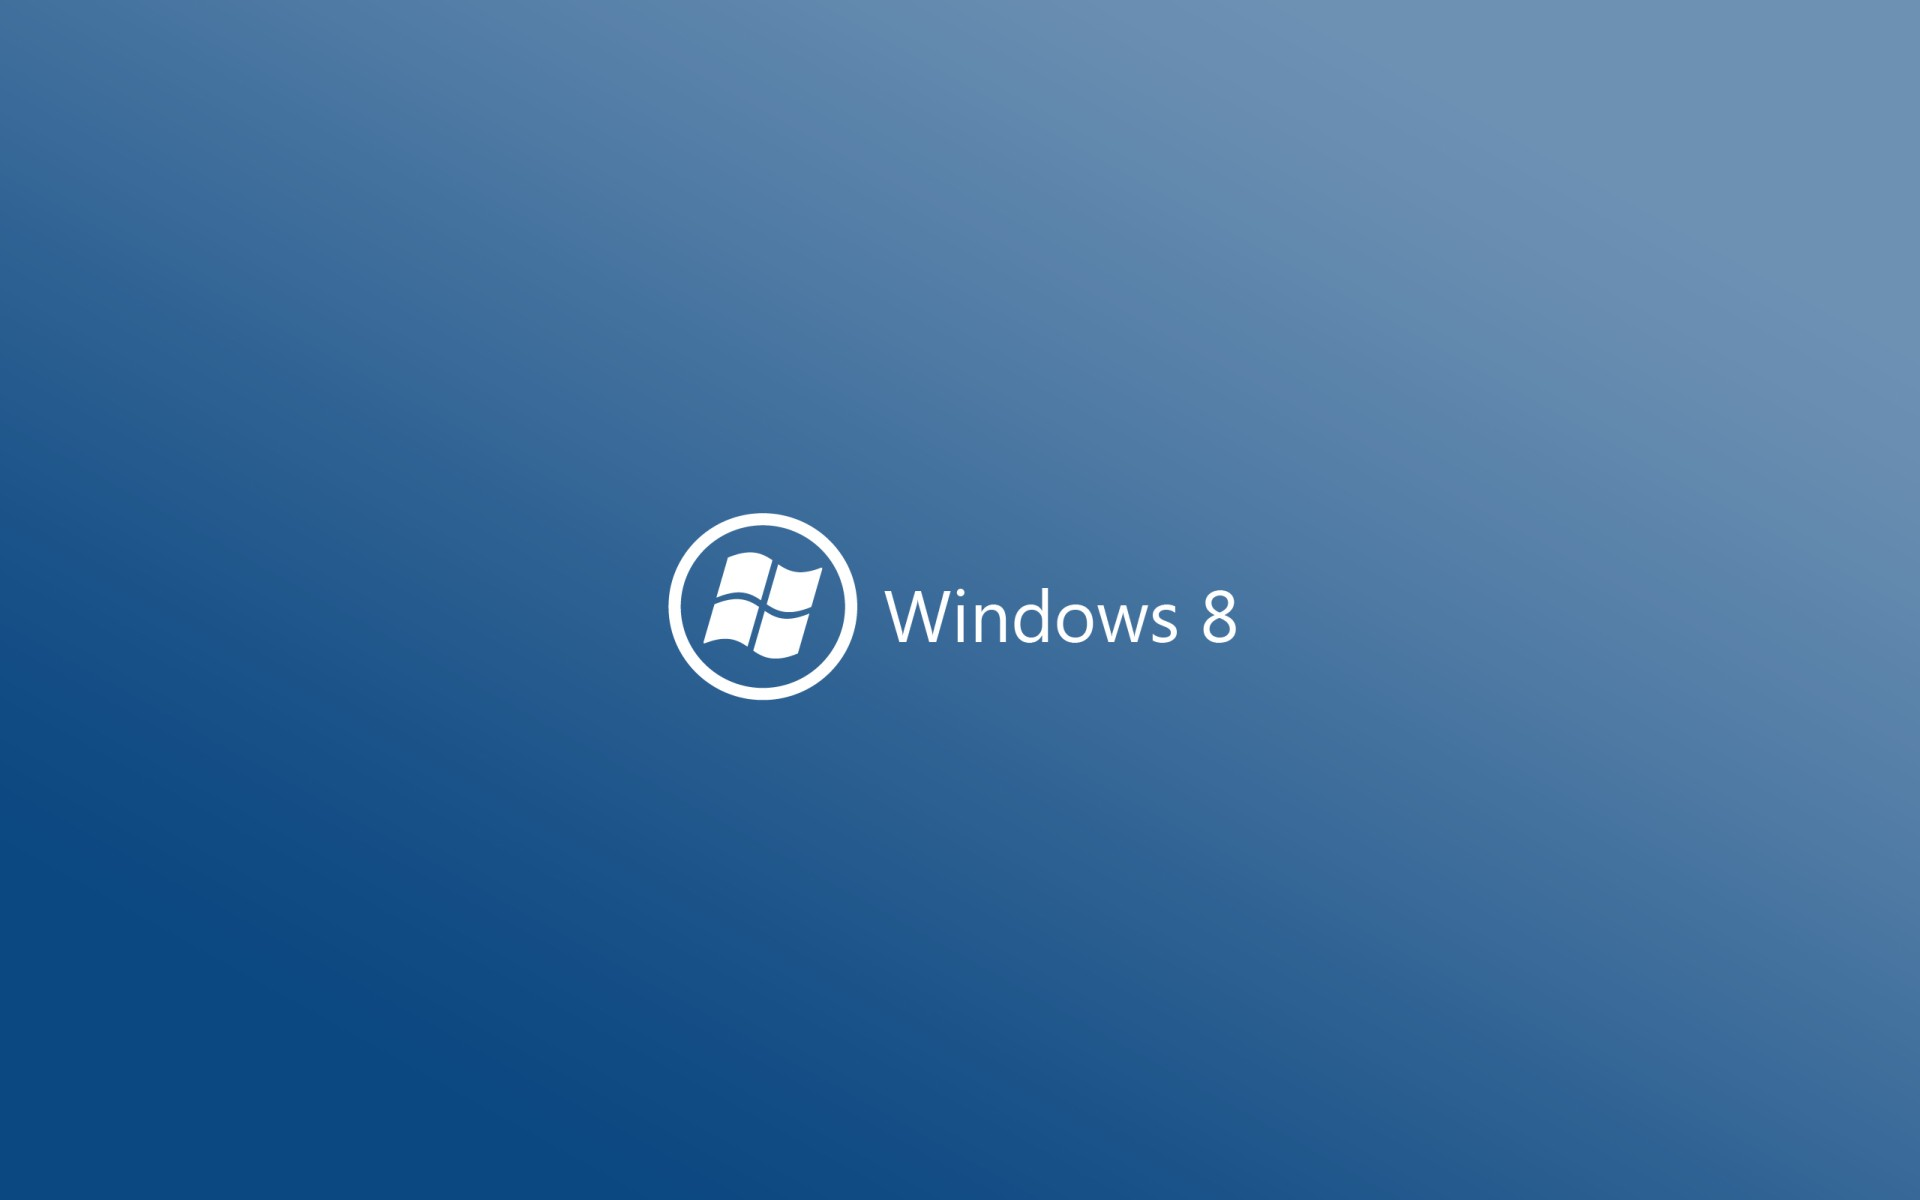 windows 8 wallpaper logo on 10 colors of background zon